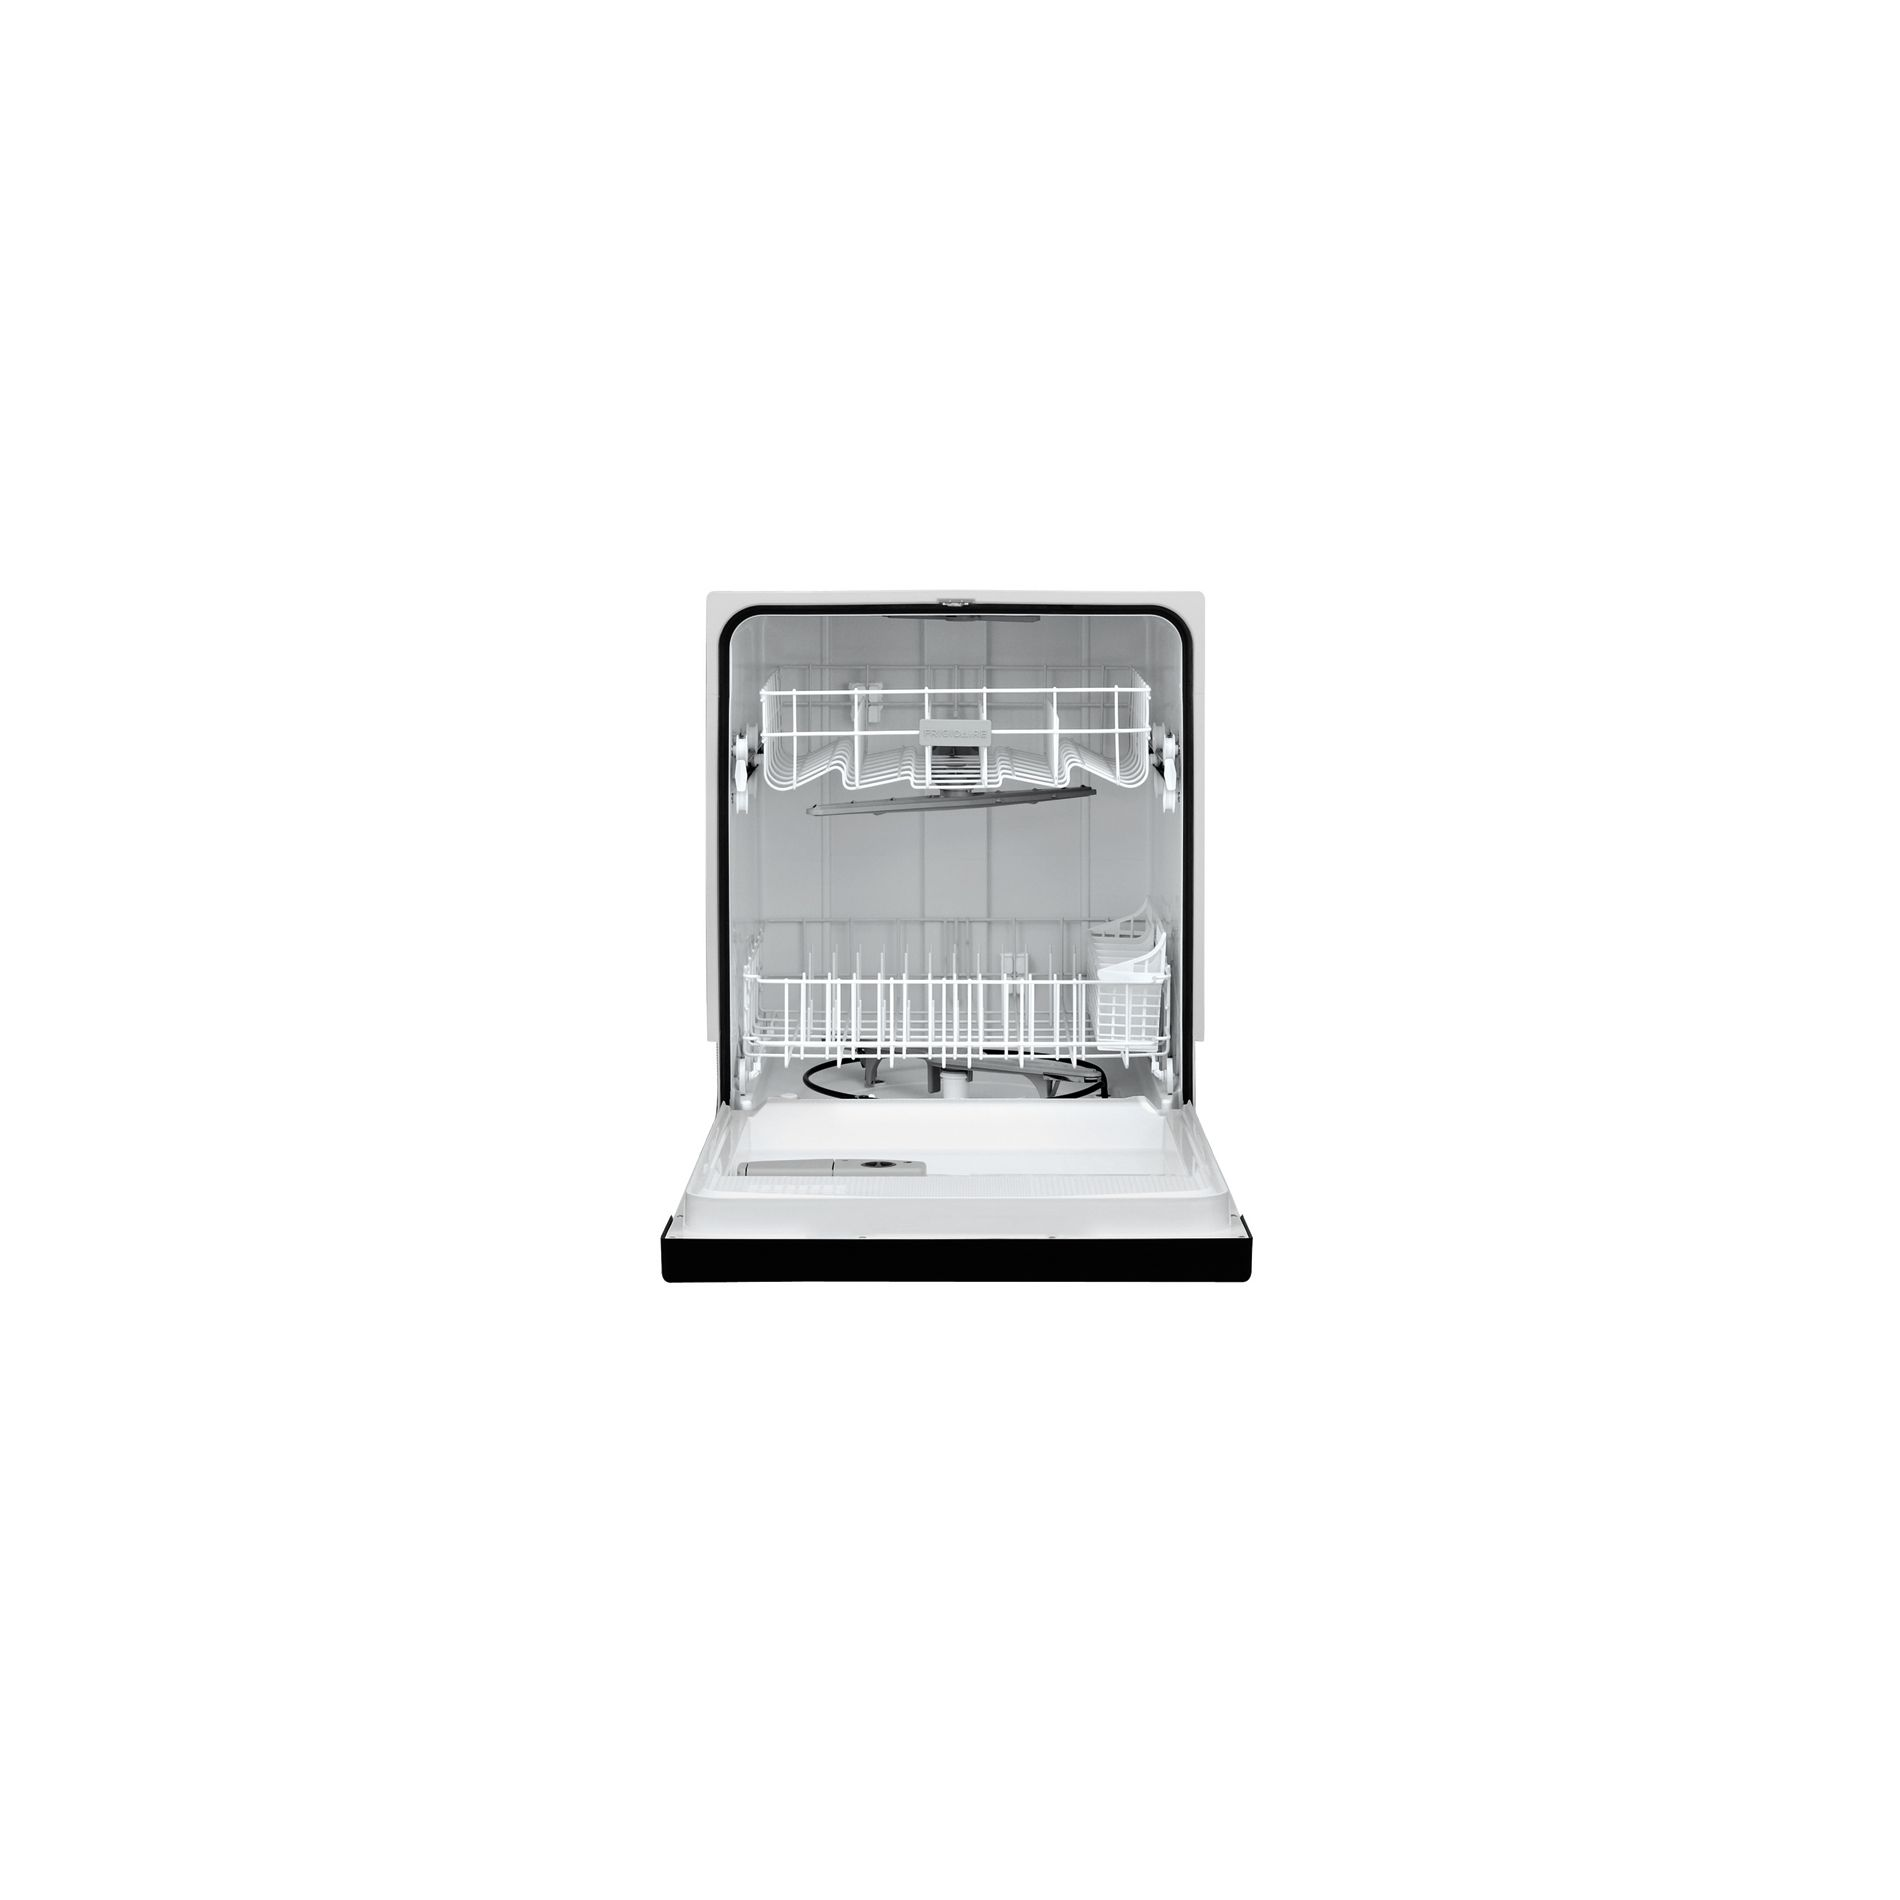 Frigidaire FFBD2406NB 24-inch Black Built-In Dishwasher